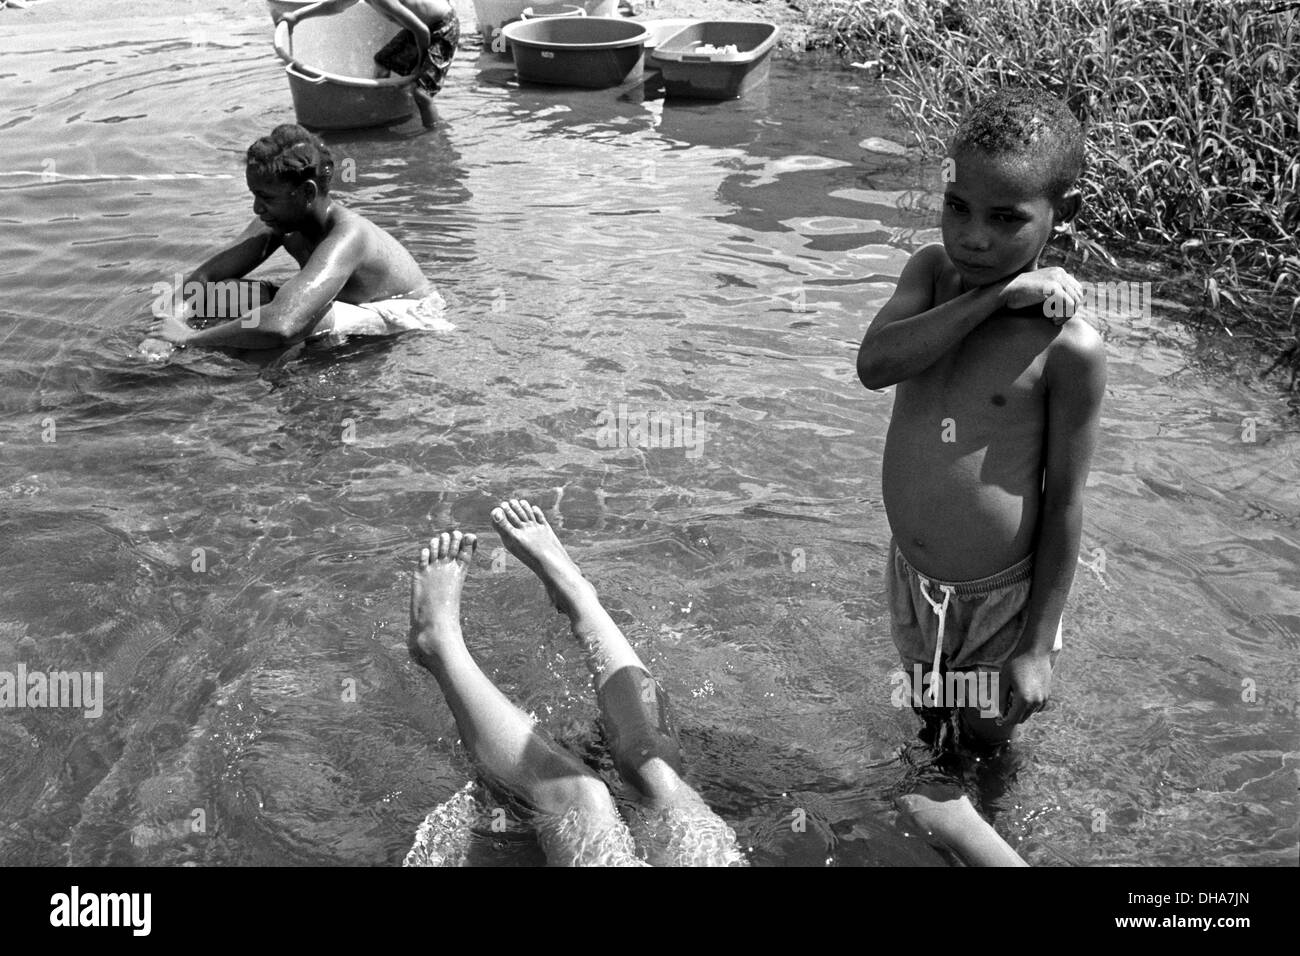 ipjr02222211feb 2000 Jantique Mozambiquechildren playing in a stream. During and after the heavy rains in Southern Africa and - Stock Image